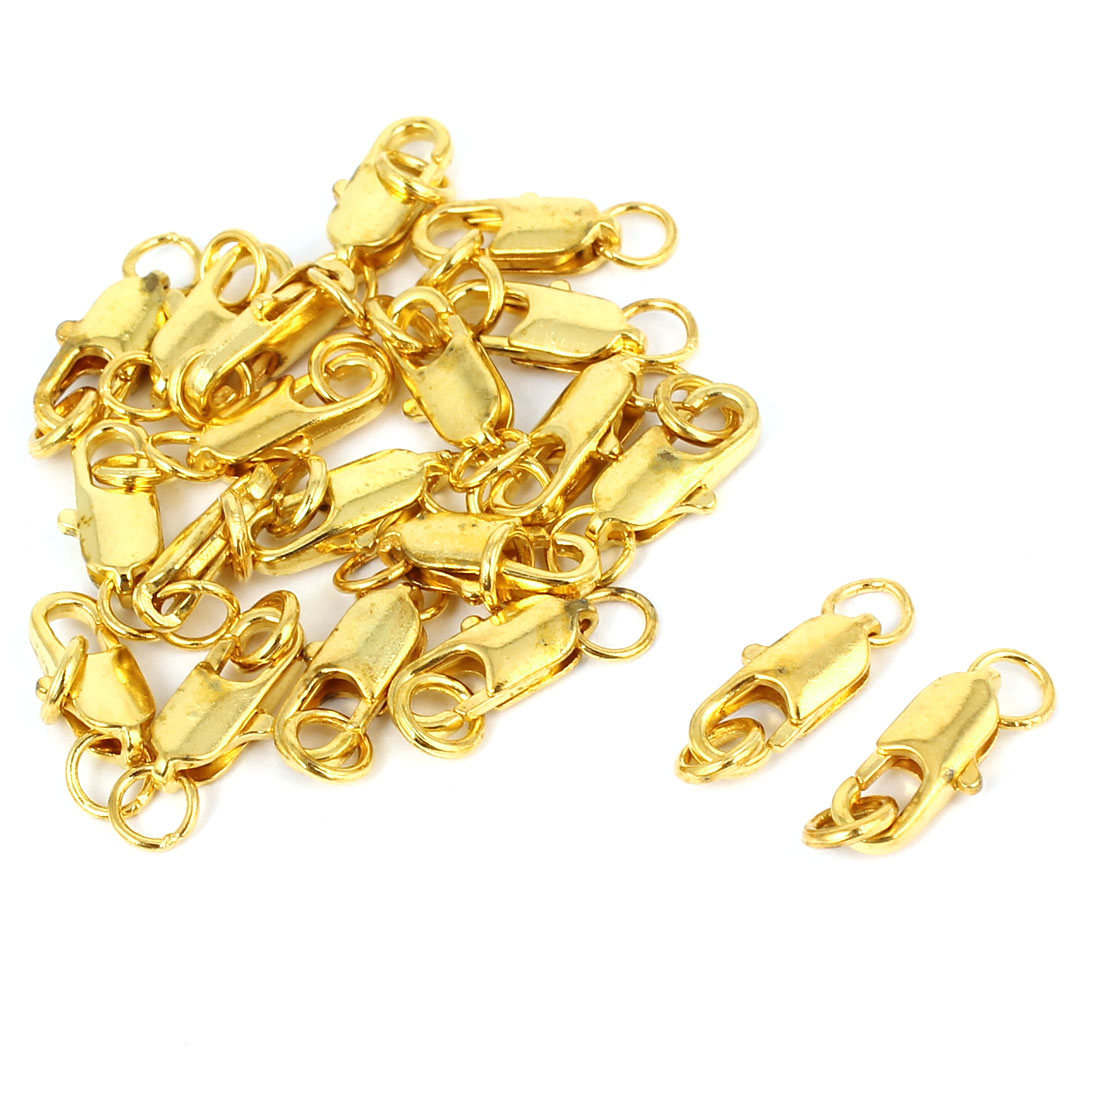 Chain Connectors Straight Lobster Claw Clasps Gold Tone 12mm 20 Pieces